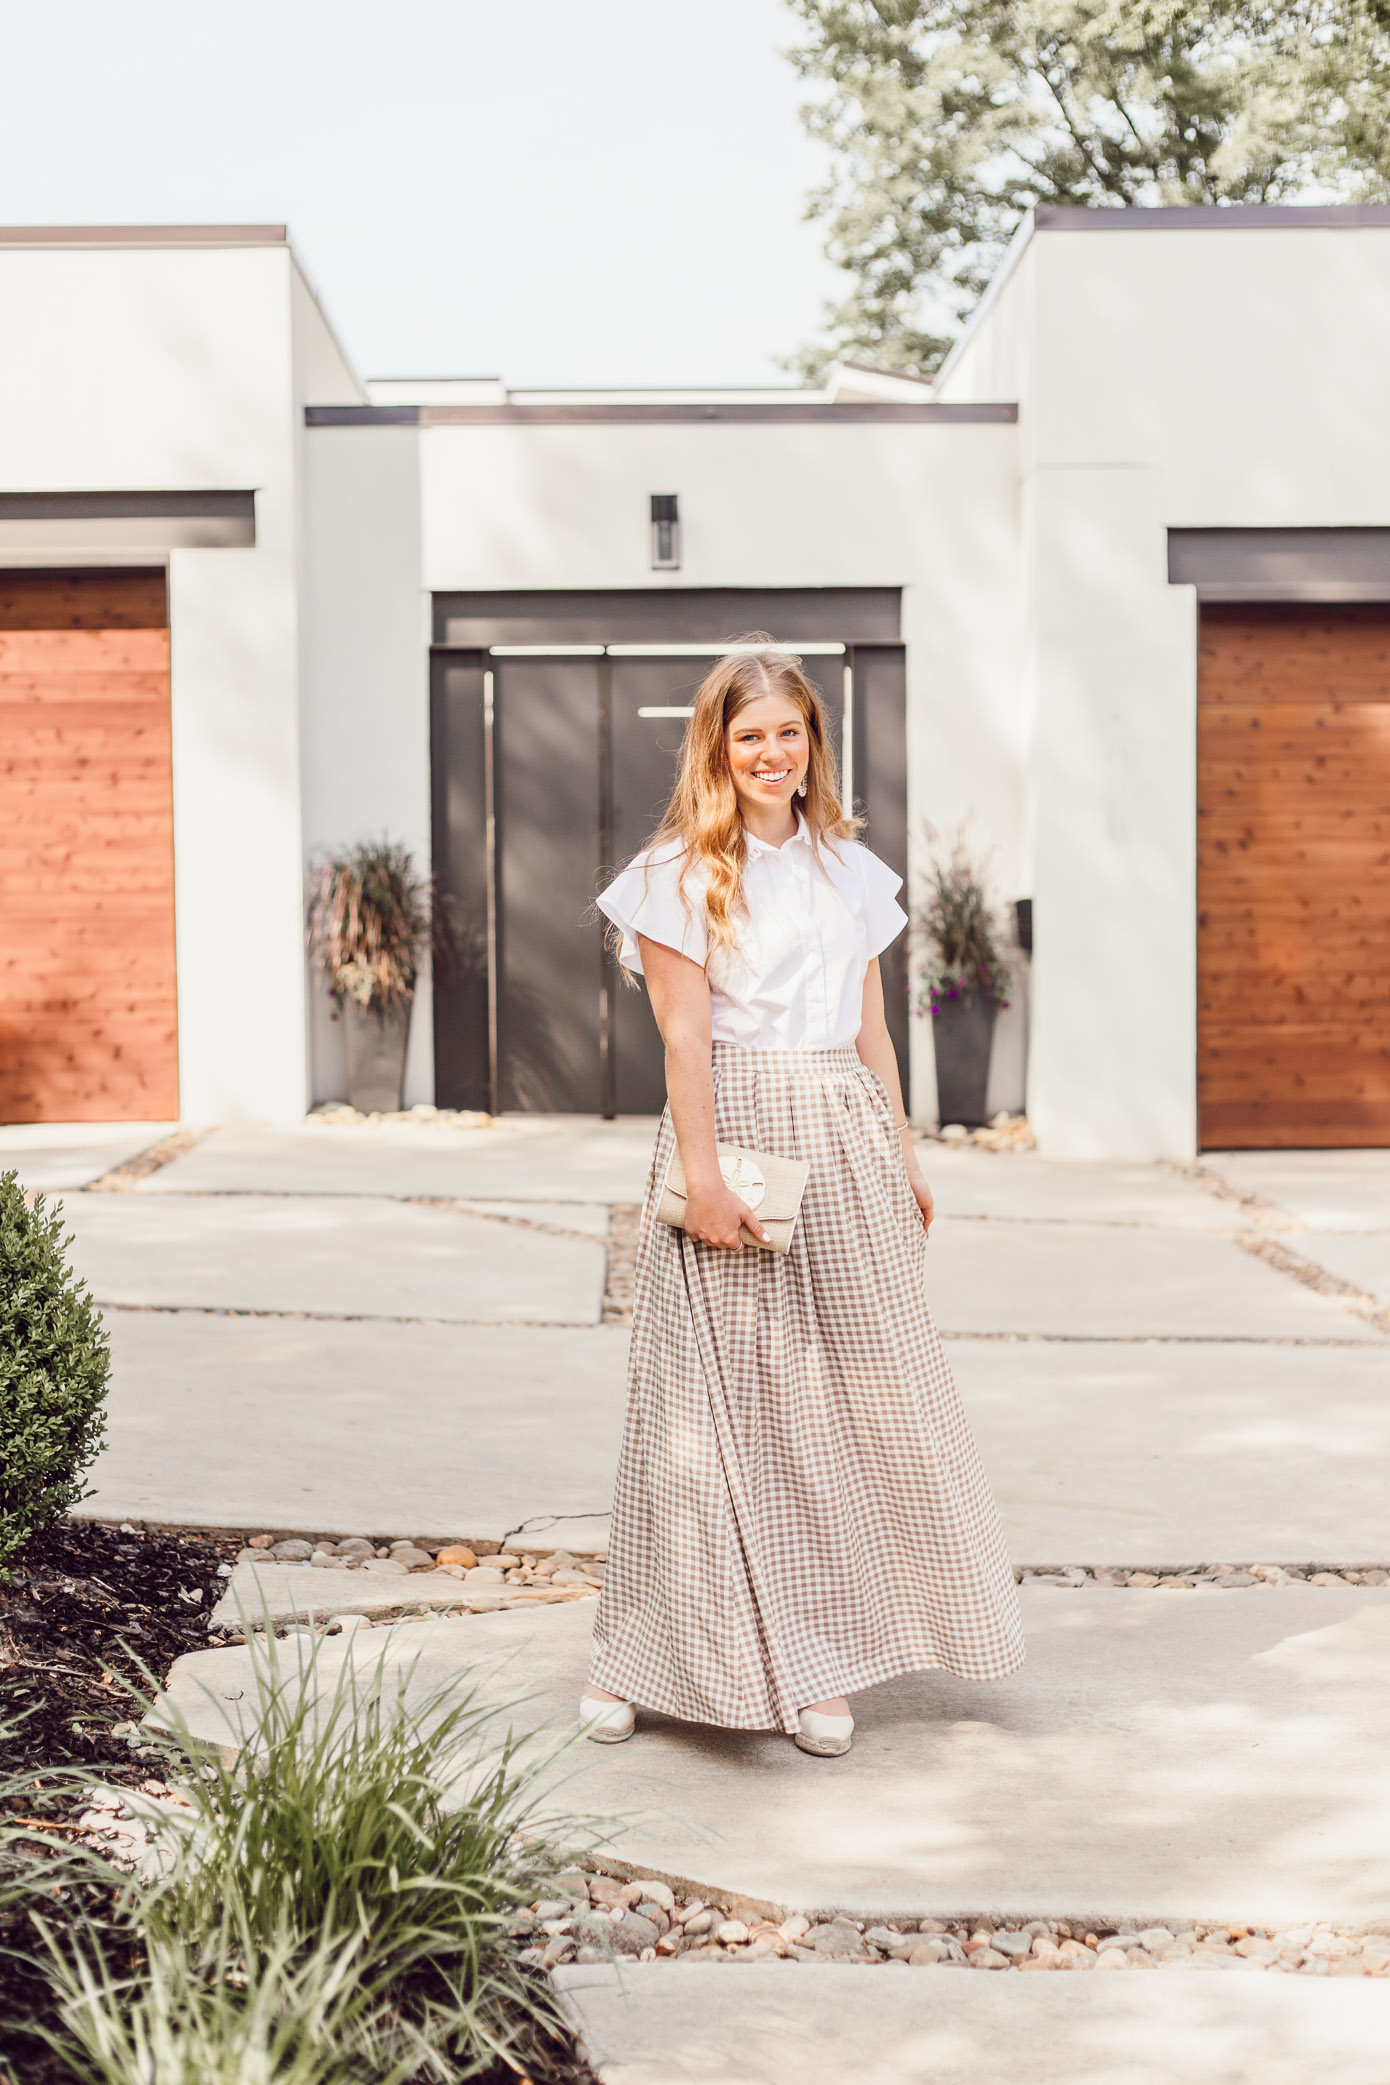 Draper James Feminine White Button Down Blouse - A Summer Gingham Maxi Skirt styled by Laura Leigh of Louella Reese #maxiskirt #gingham #southernstyle